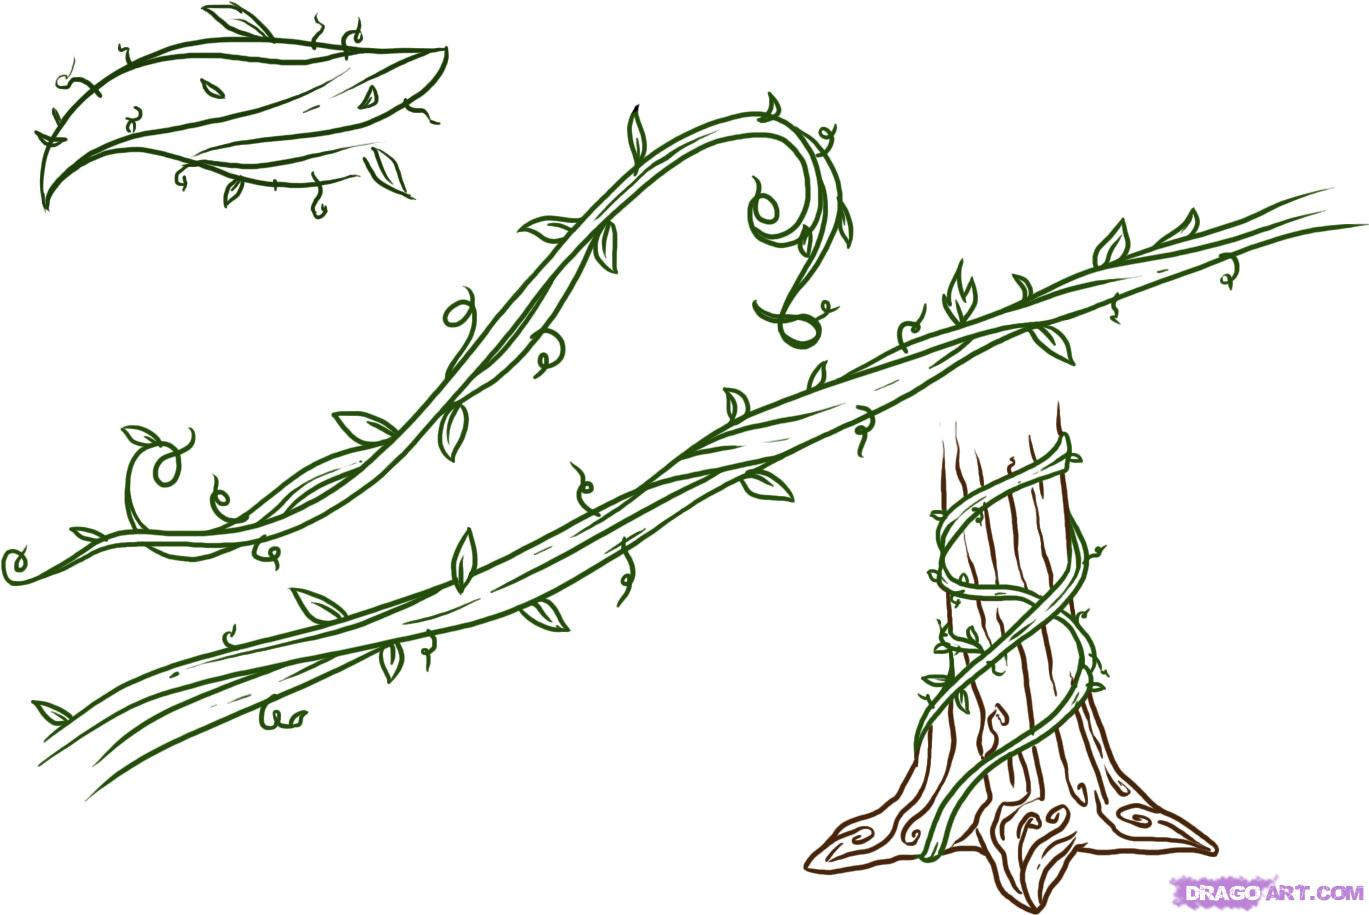 1369x915 Drawings Of Flowers Leaves And Vines To Draw Vines, Step By Step